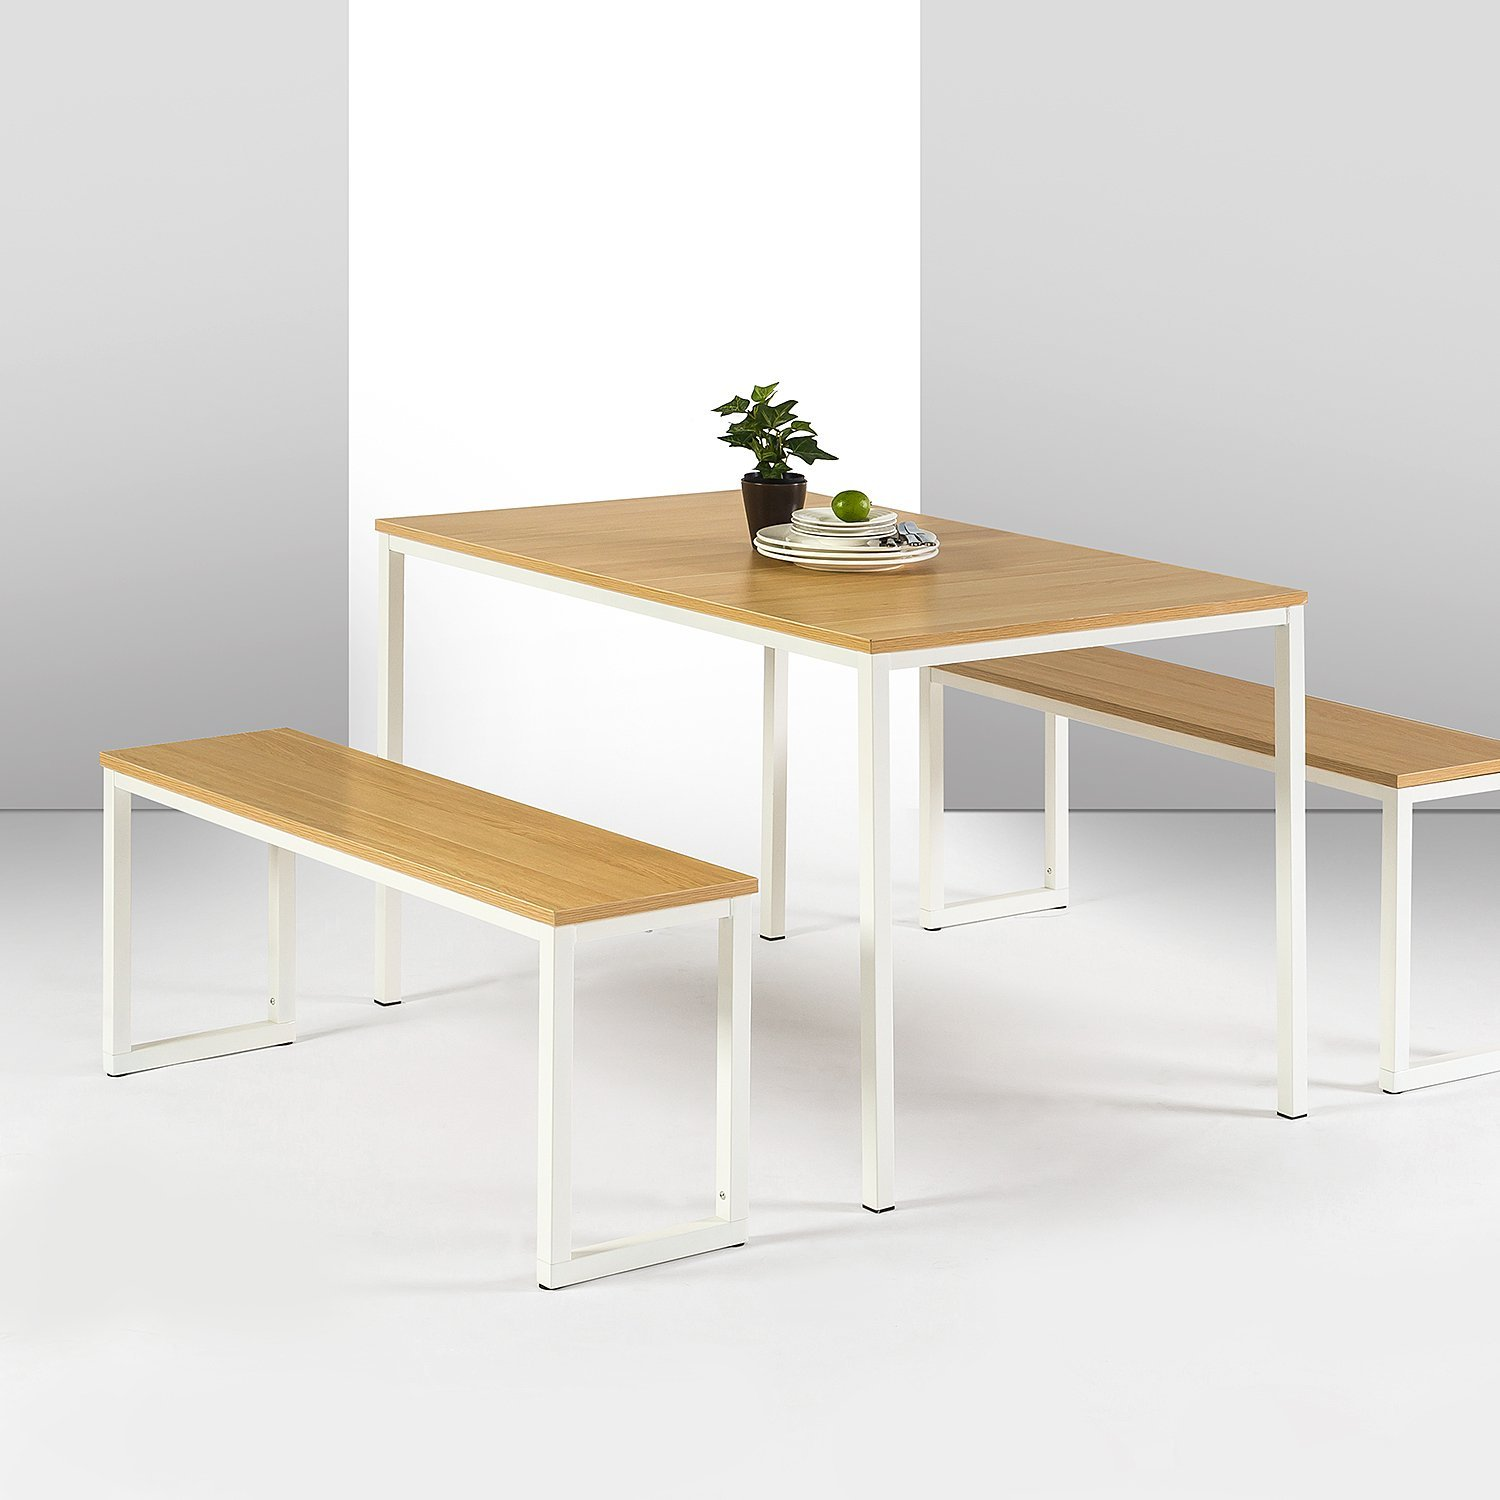 Zinus Louis Modern Studio Collection Soho Dining Table with Two Benches / 3 piece set, White by Zinus (Image #1)